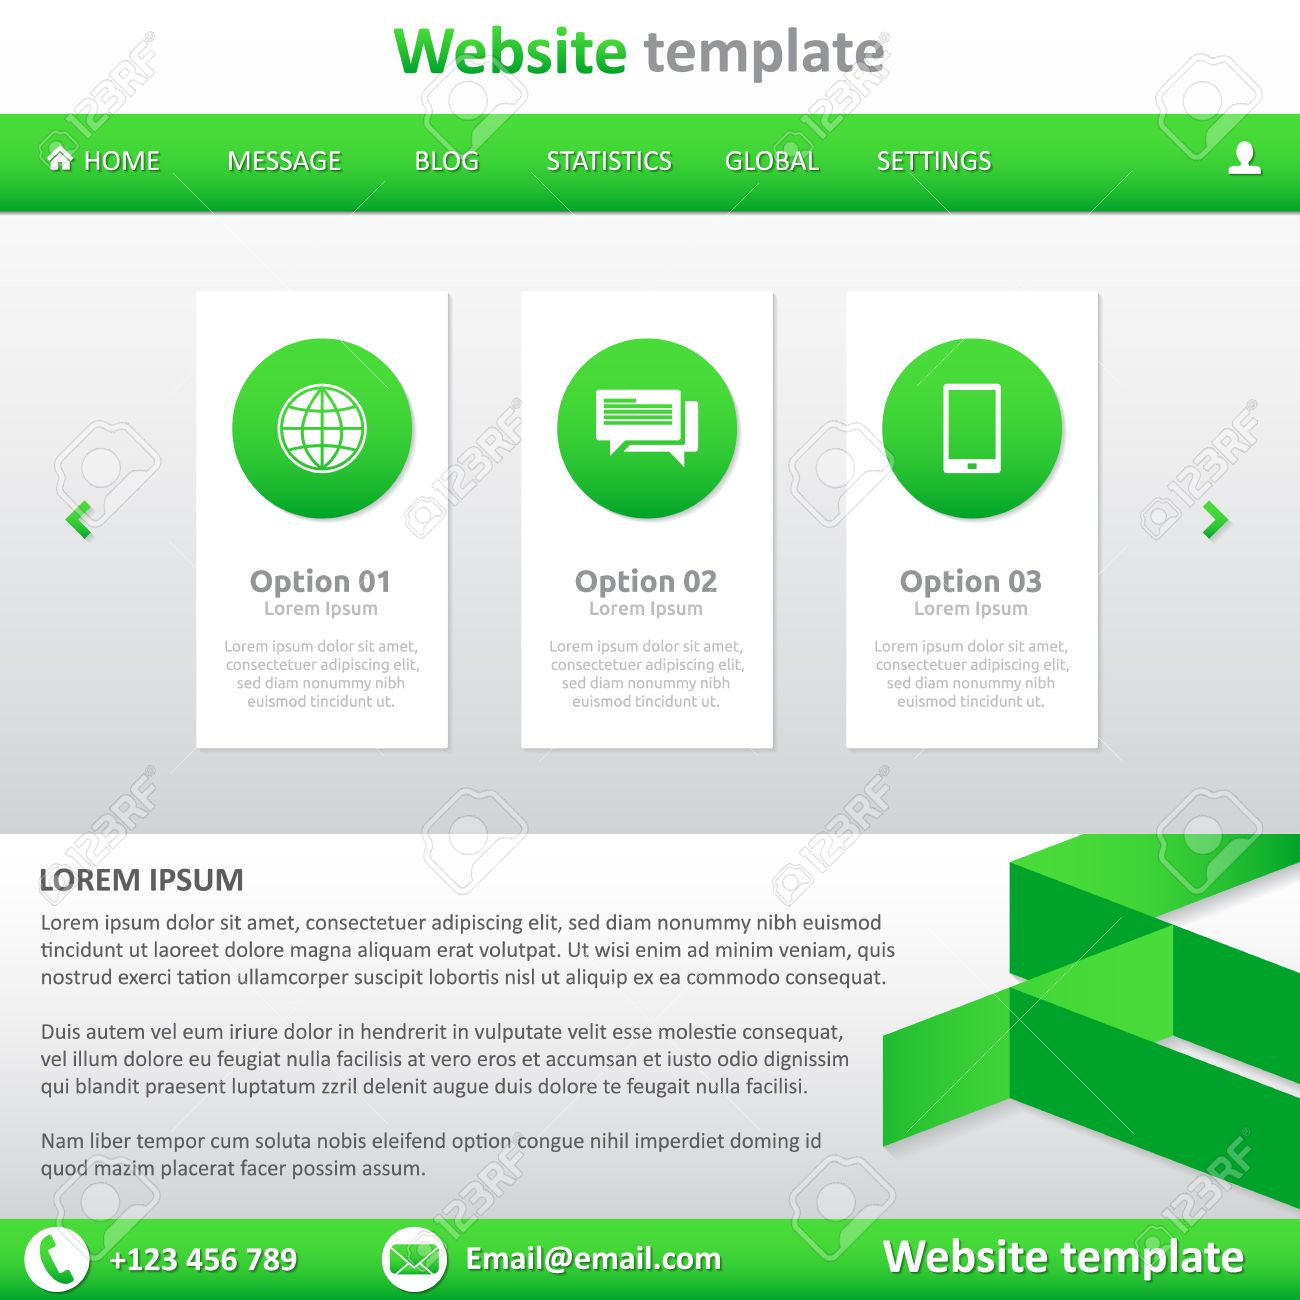 Website Template White And Green - Natural - Slideshow, Footer ...